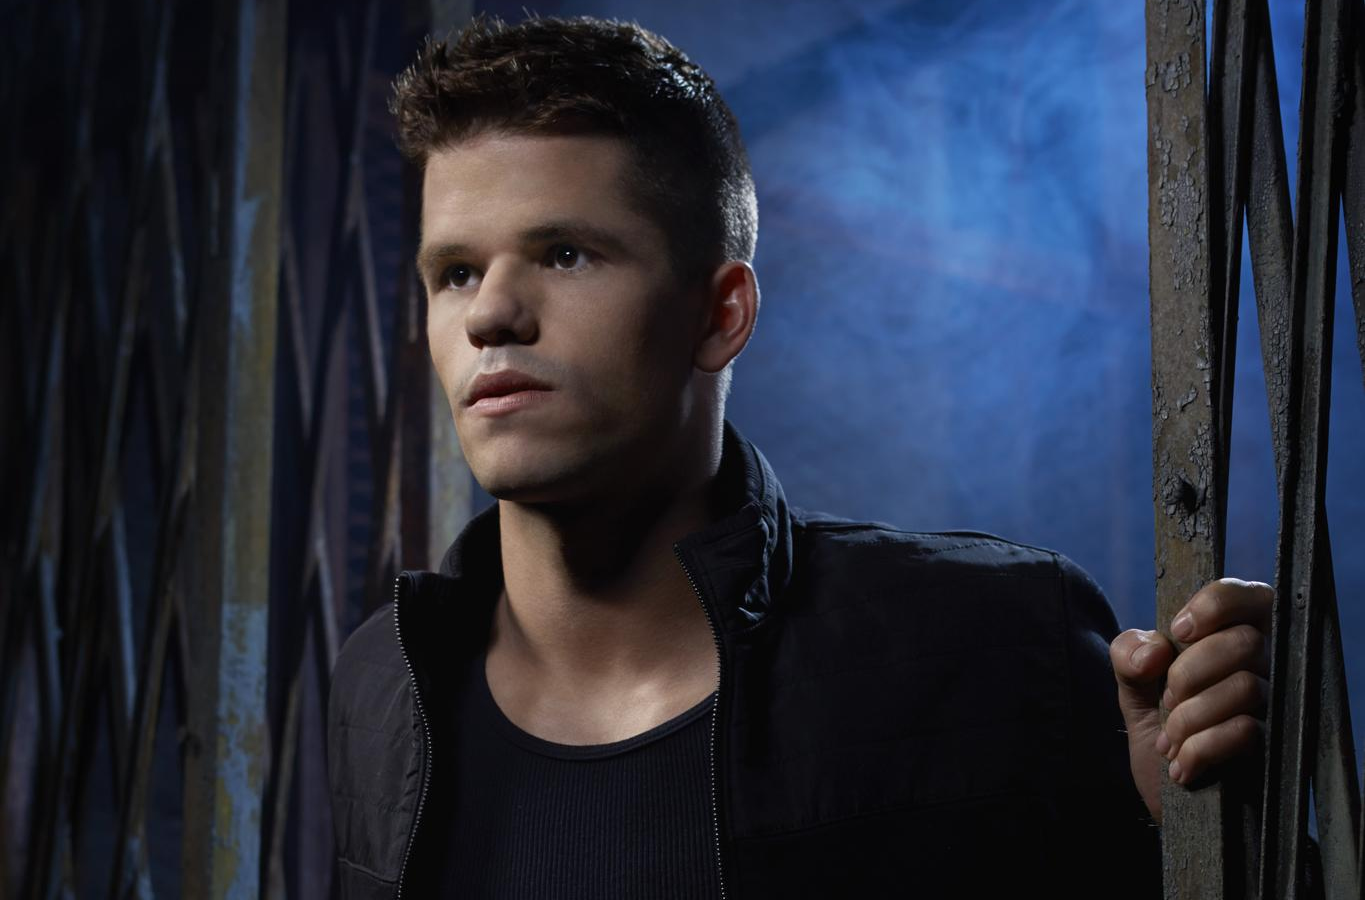 Charlie Carver, de 'Teen Wolf' e 'Desperate Housewives', saiu do armário em post no Instagram